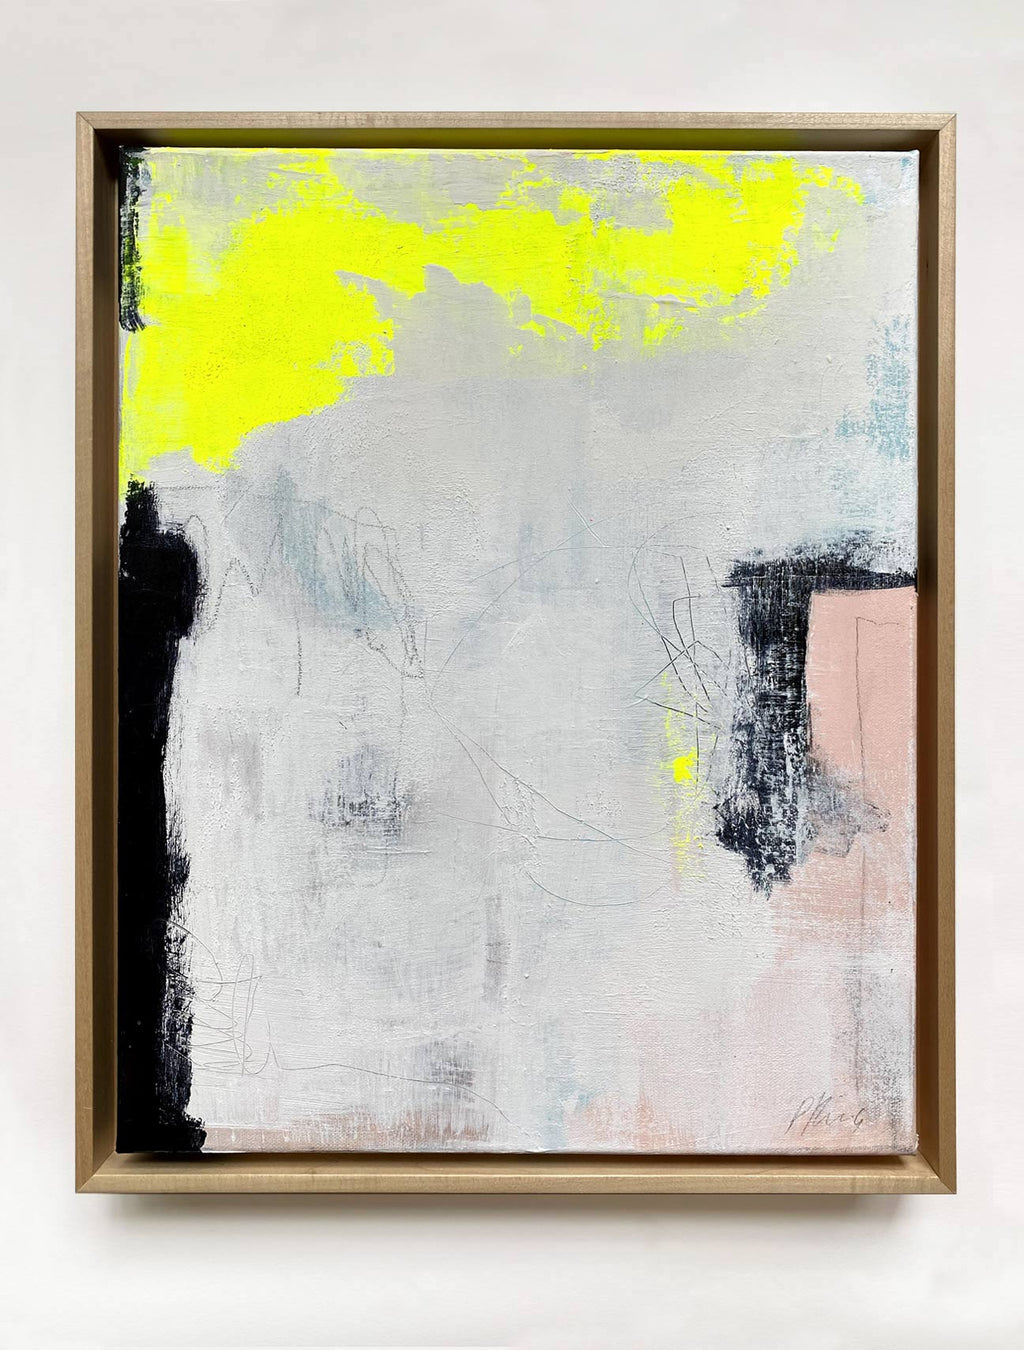 Light Through My Foggy Window - Framed Abstract Painting By Paige Ring